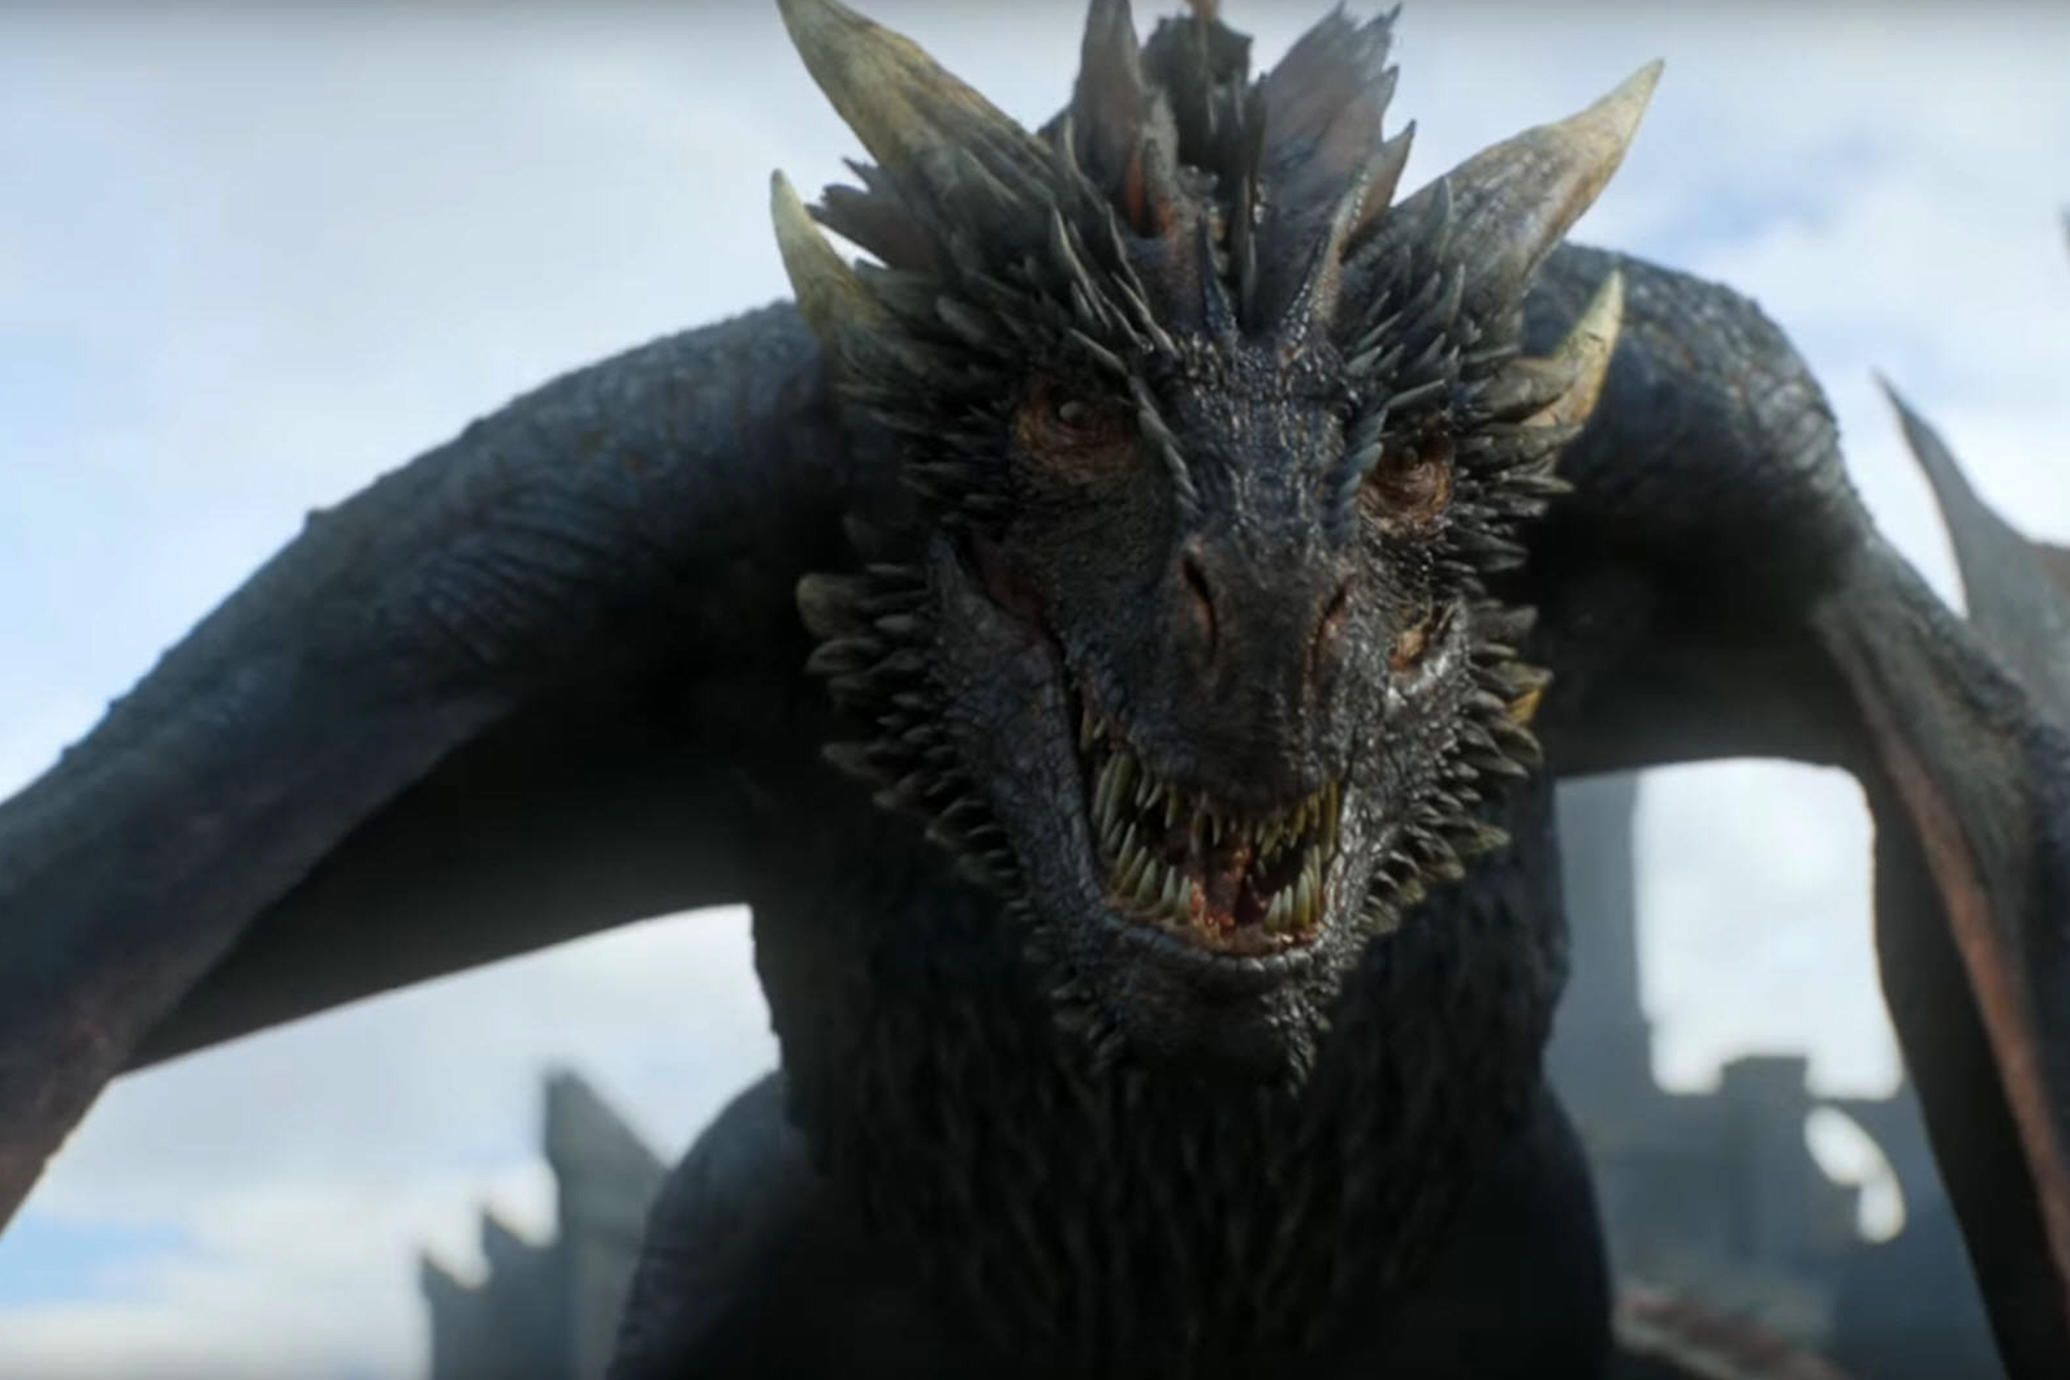 game-of-thrones-dragons-grrm-asoiaf